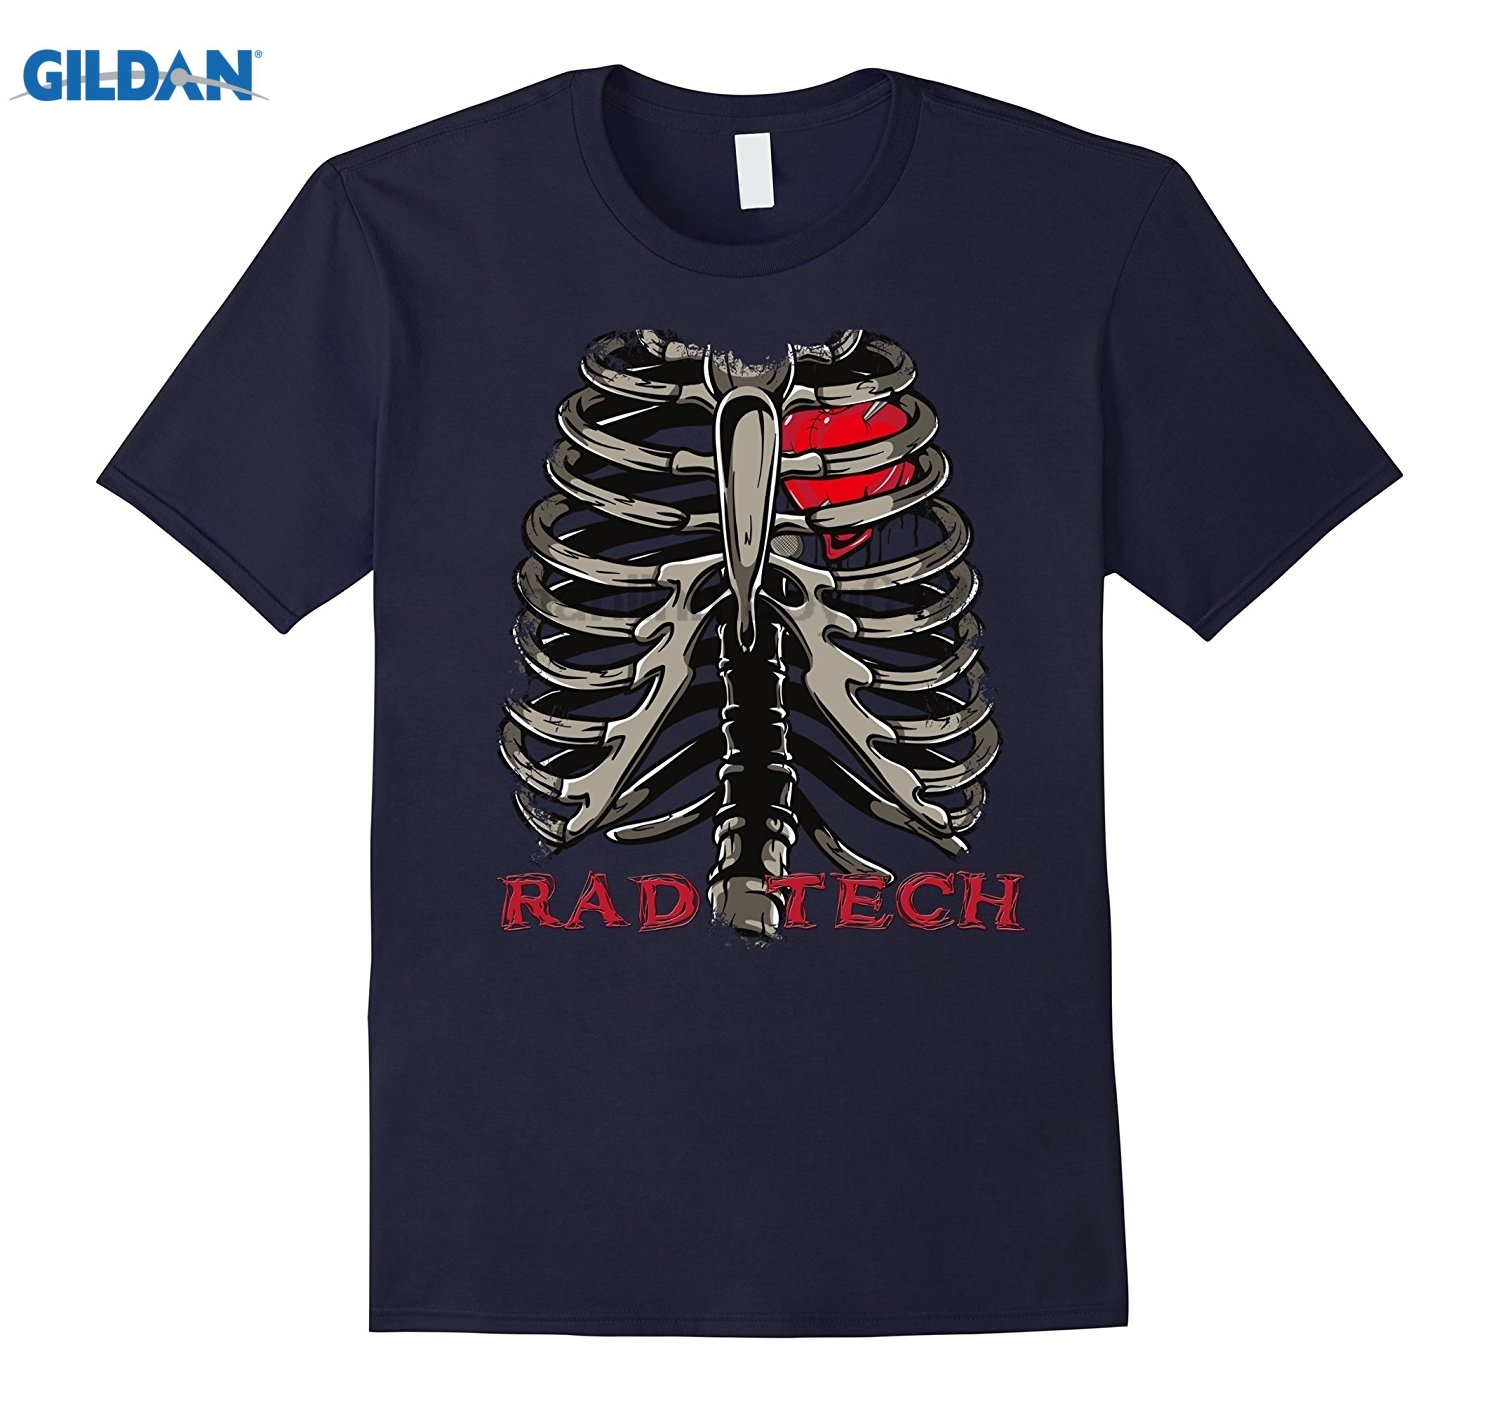 GILDAN Rad Tech T-Shirt, X Ray Radiology Xray Technician Tee Gift sunglasses women T-shi ...